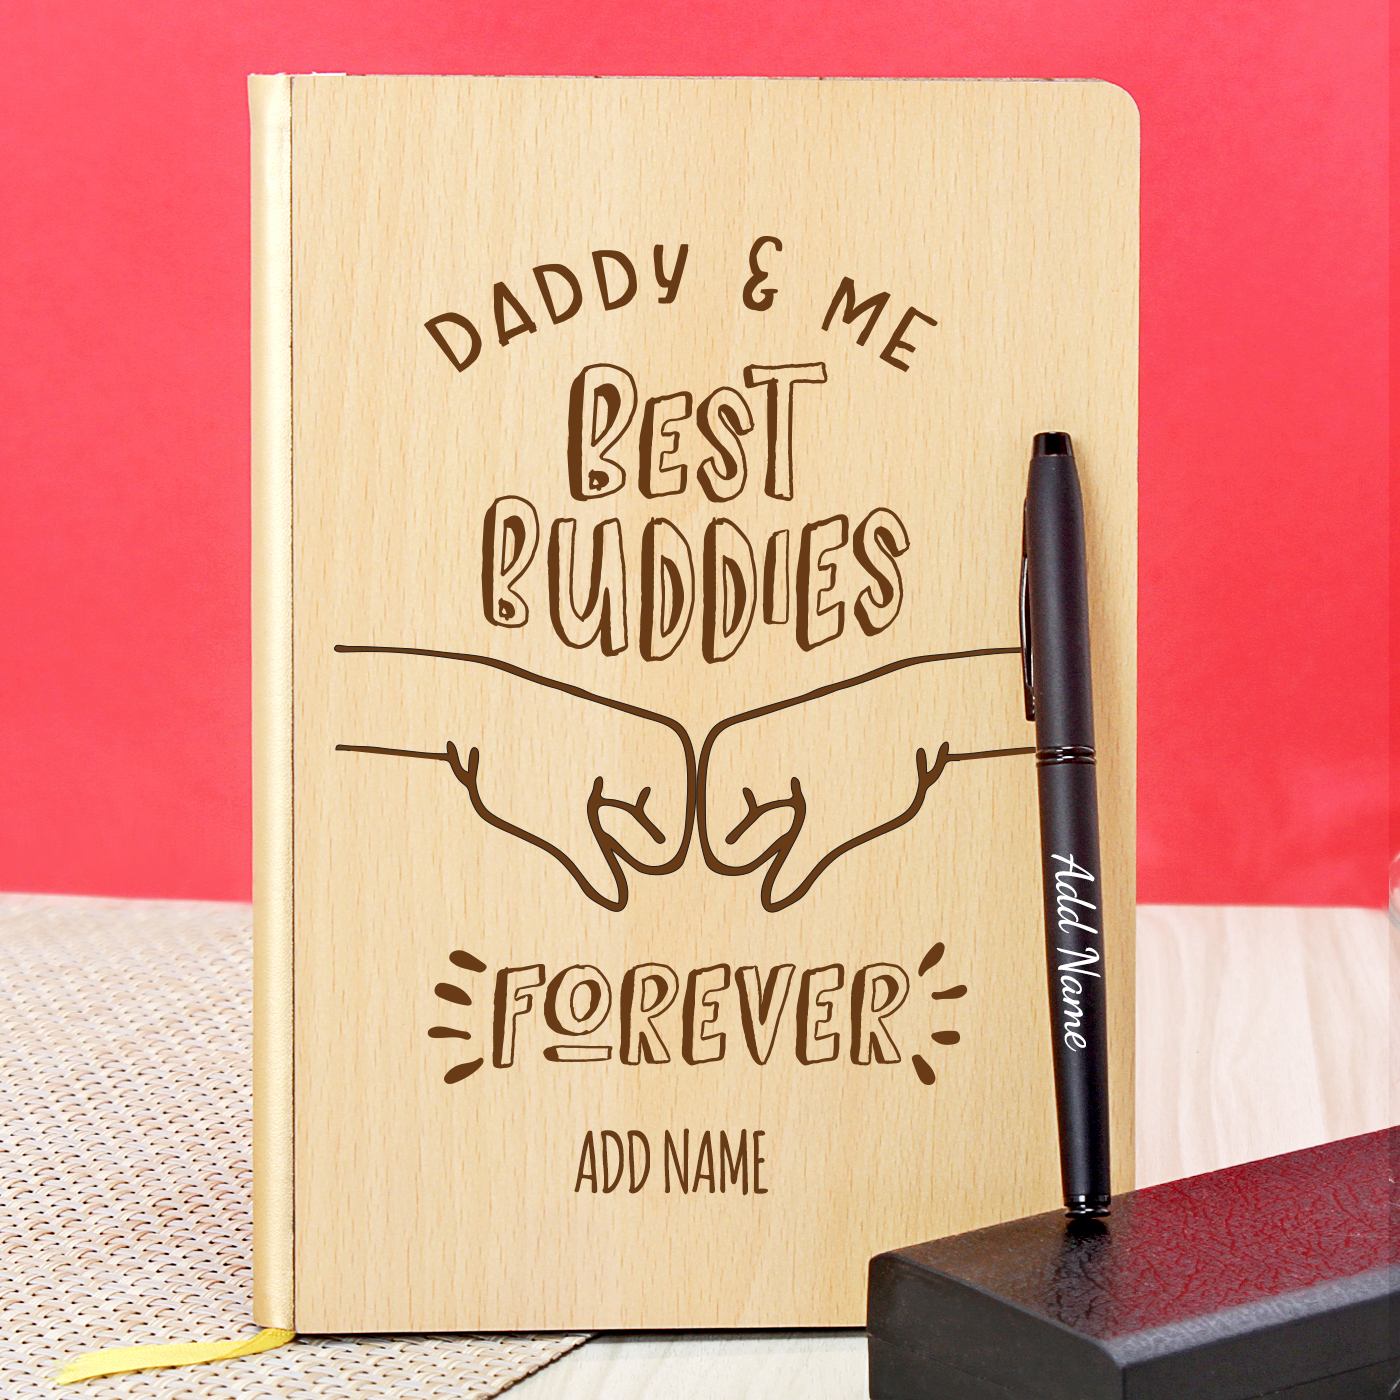 Personalized-Wooden-Diary-with-Pen-for-Daddy